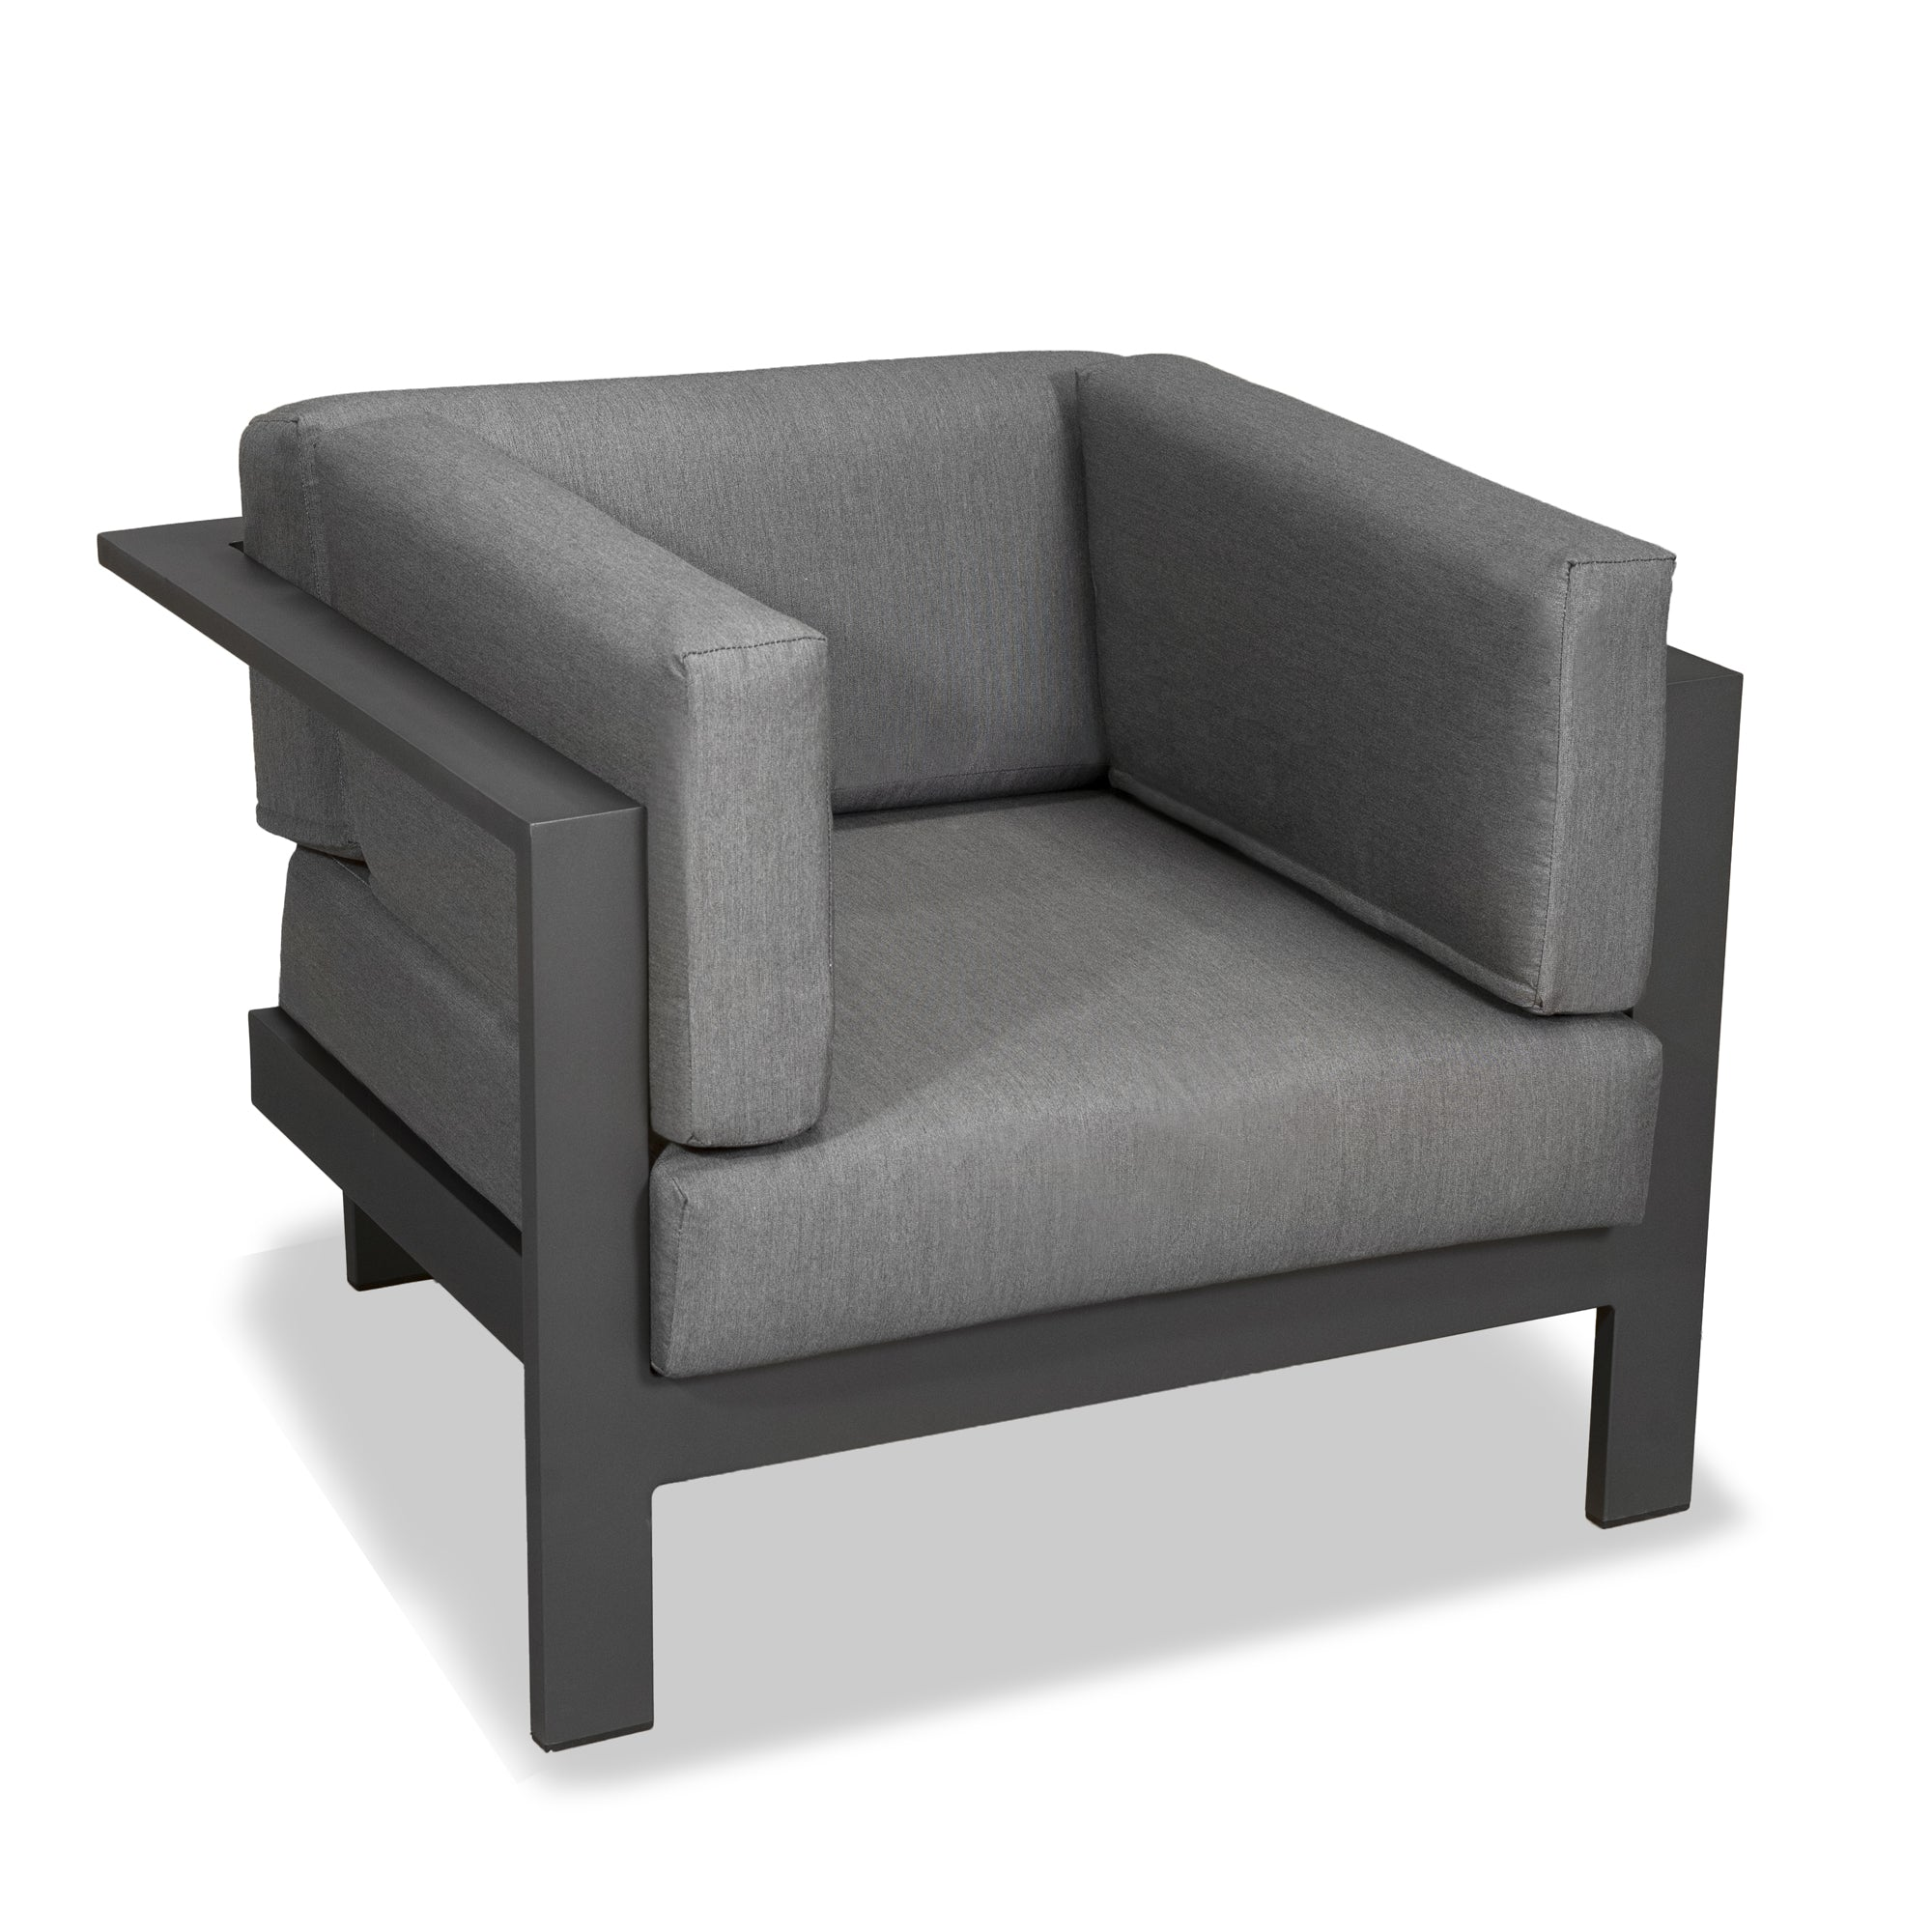 Evette - Single Seat outdoor Sofa Anthracite